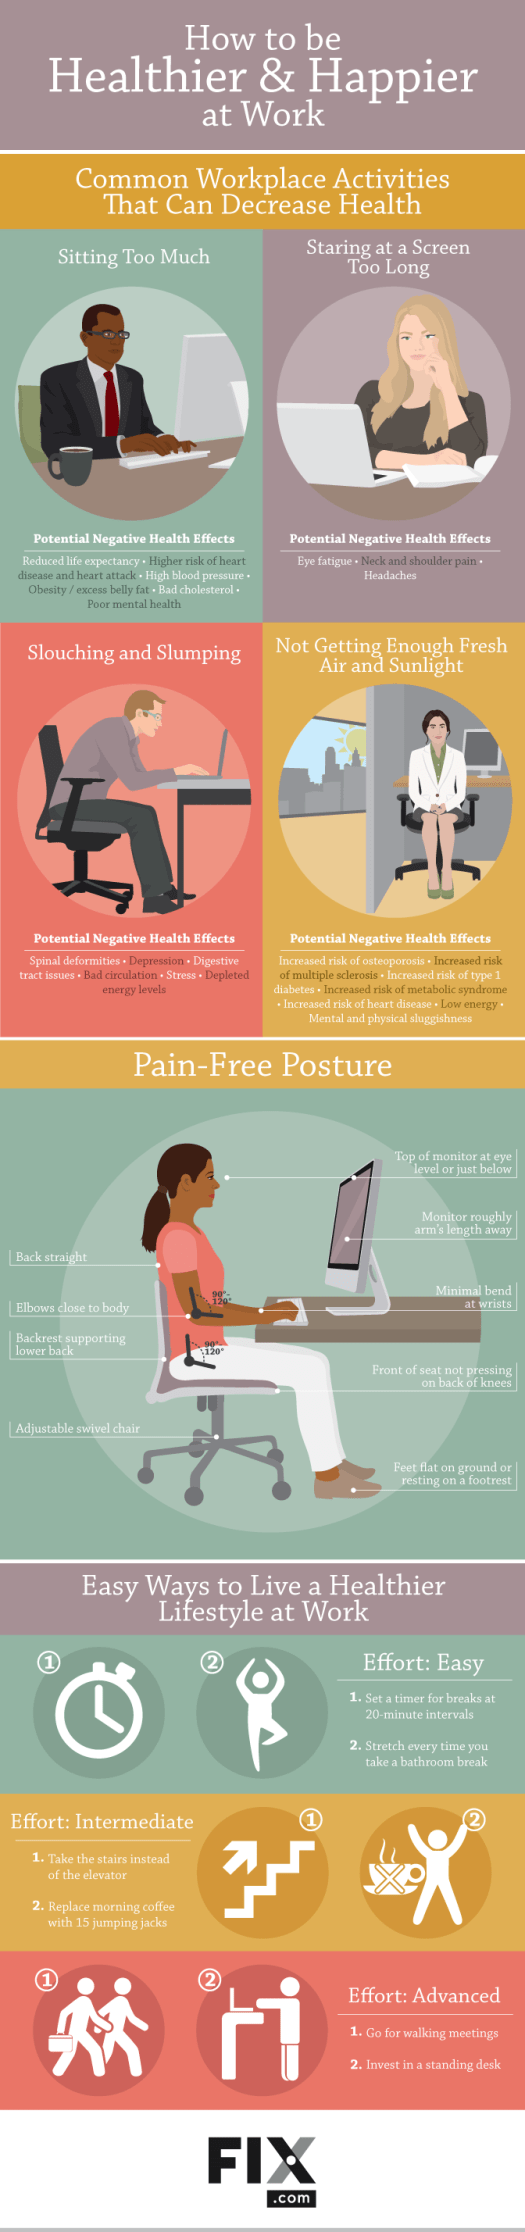 How to be Healthier and Happier at Work #Infographic